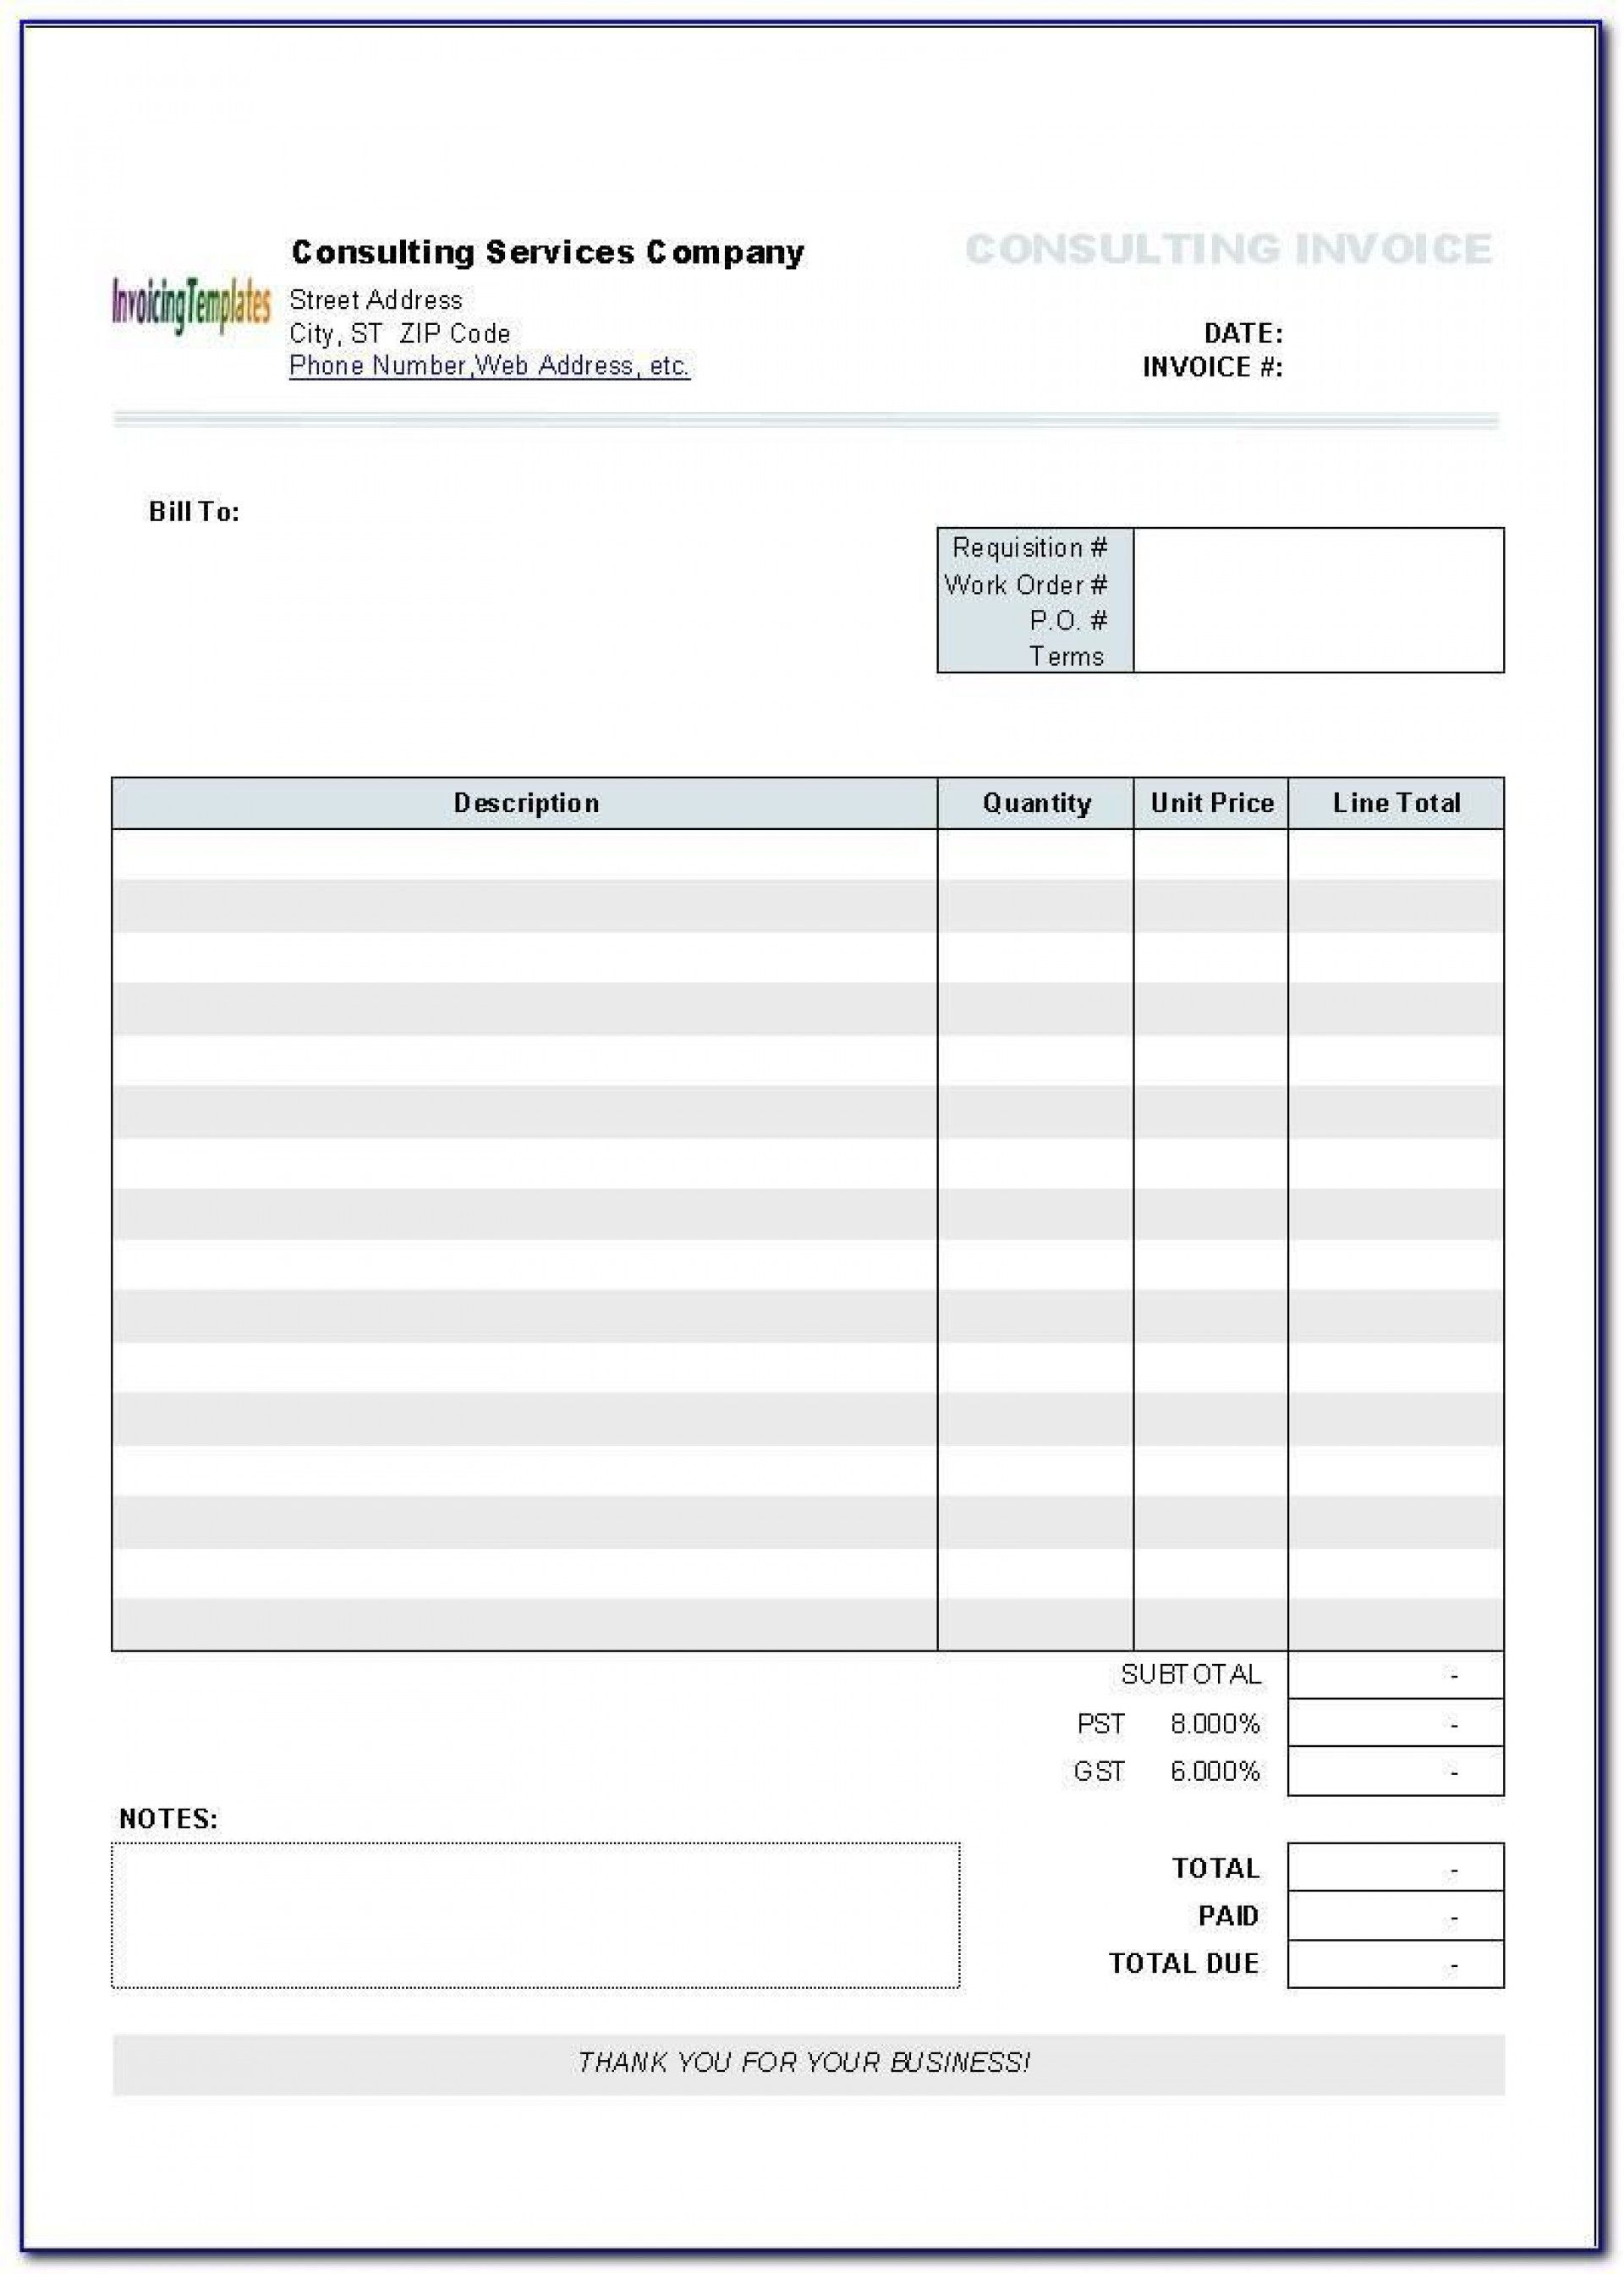 005 Staggering Invoice Template Printable Free Word Doc High Resolution 1920